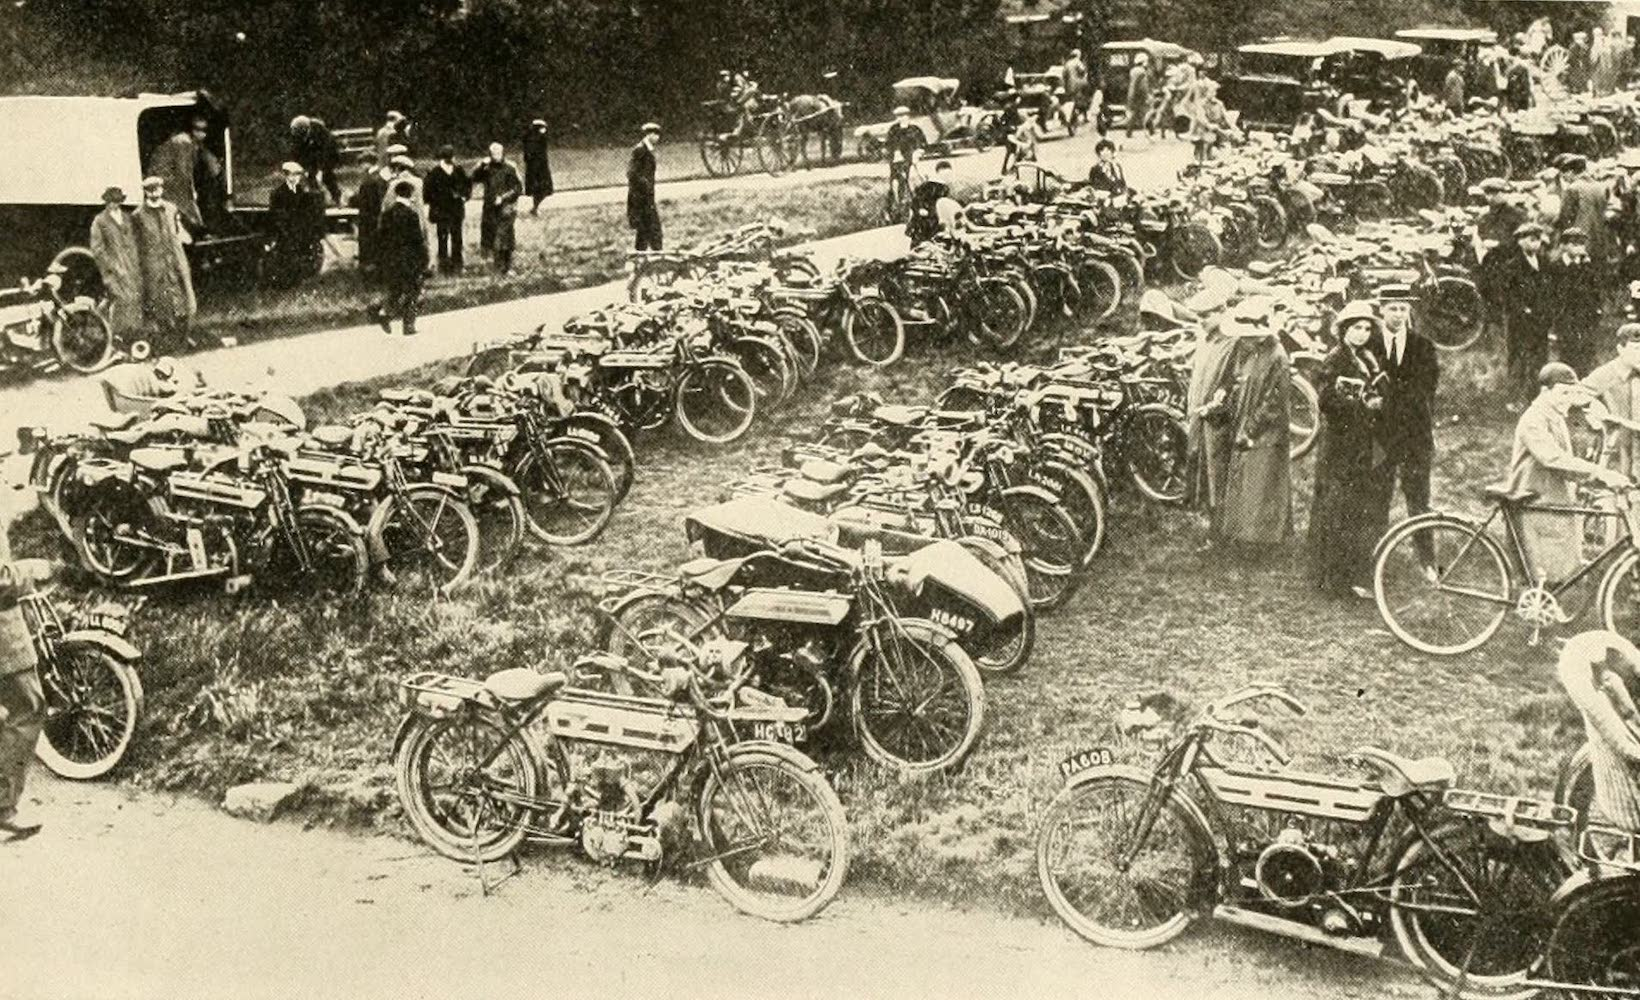 Laird & Lee's World's War Glimpses - The Great Rally of Motorcyclists (1914)